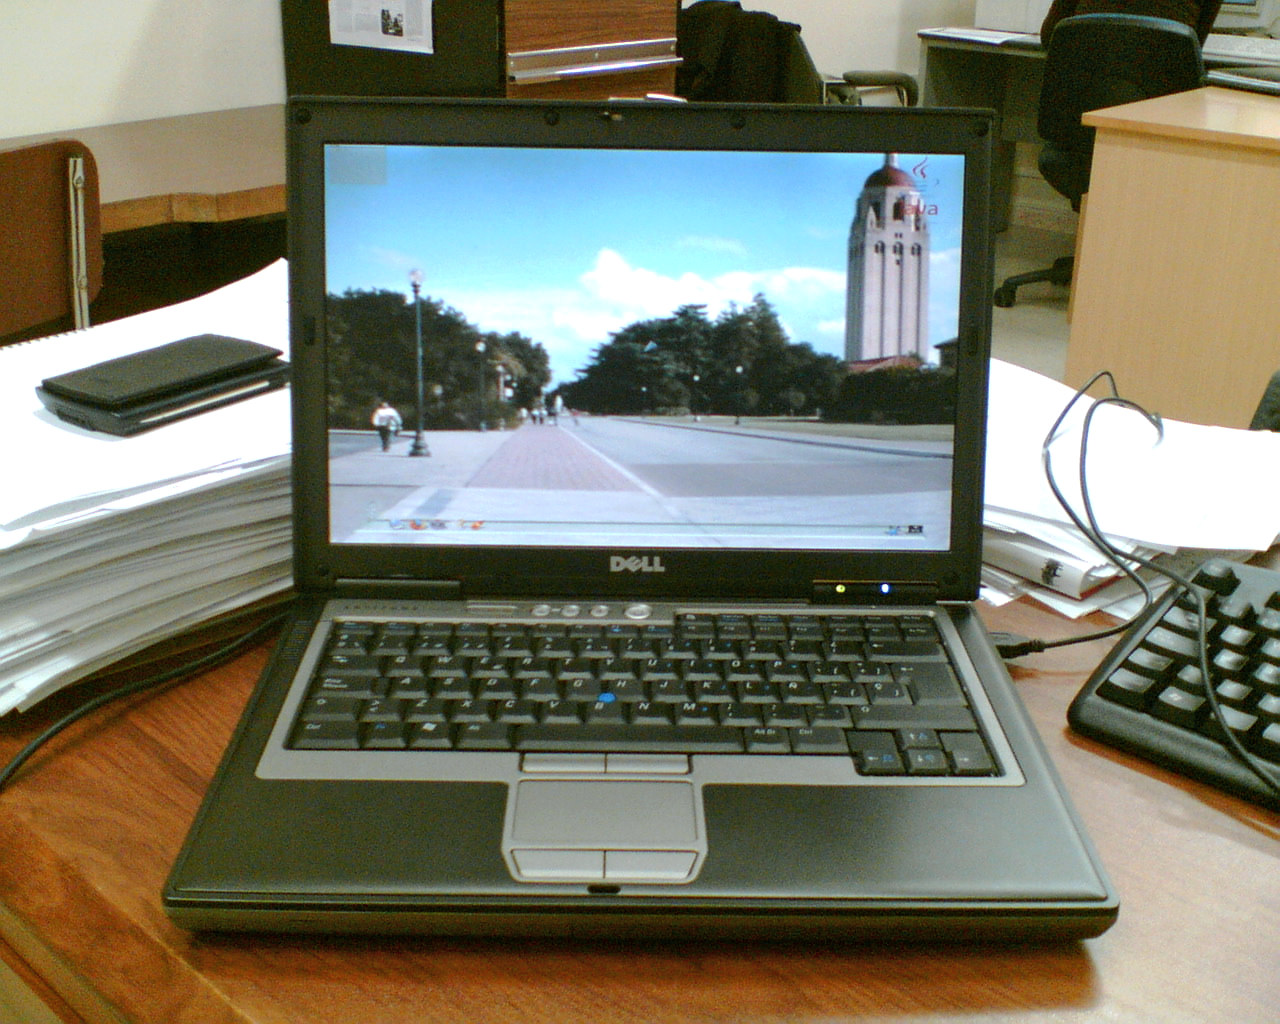 File:Dell Latitude D620.jpg